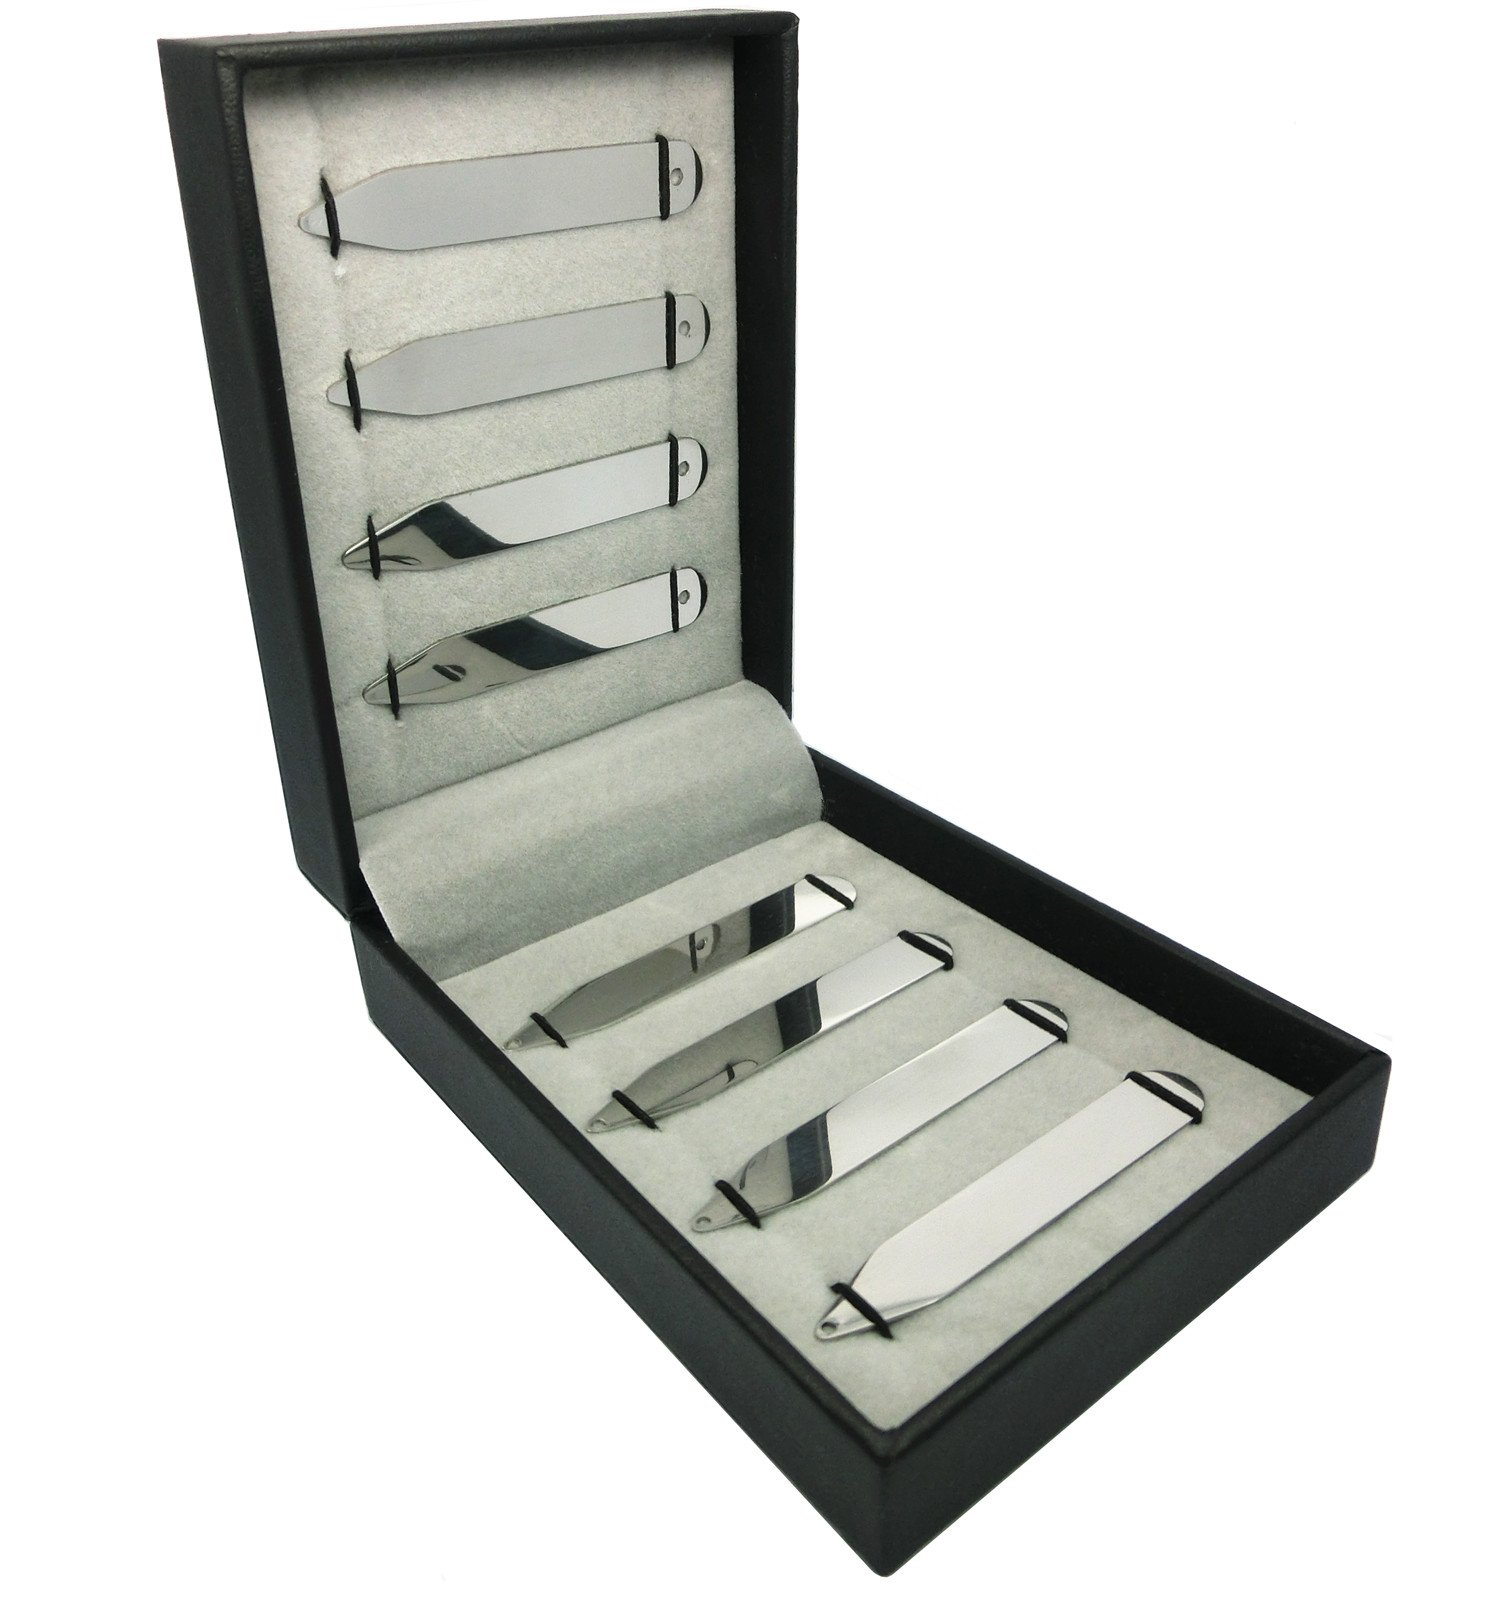 Shang Zun 8 Pcs Stainless Steel Collar Stays with Holes in a Gift Box 2.5''